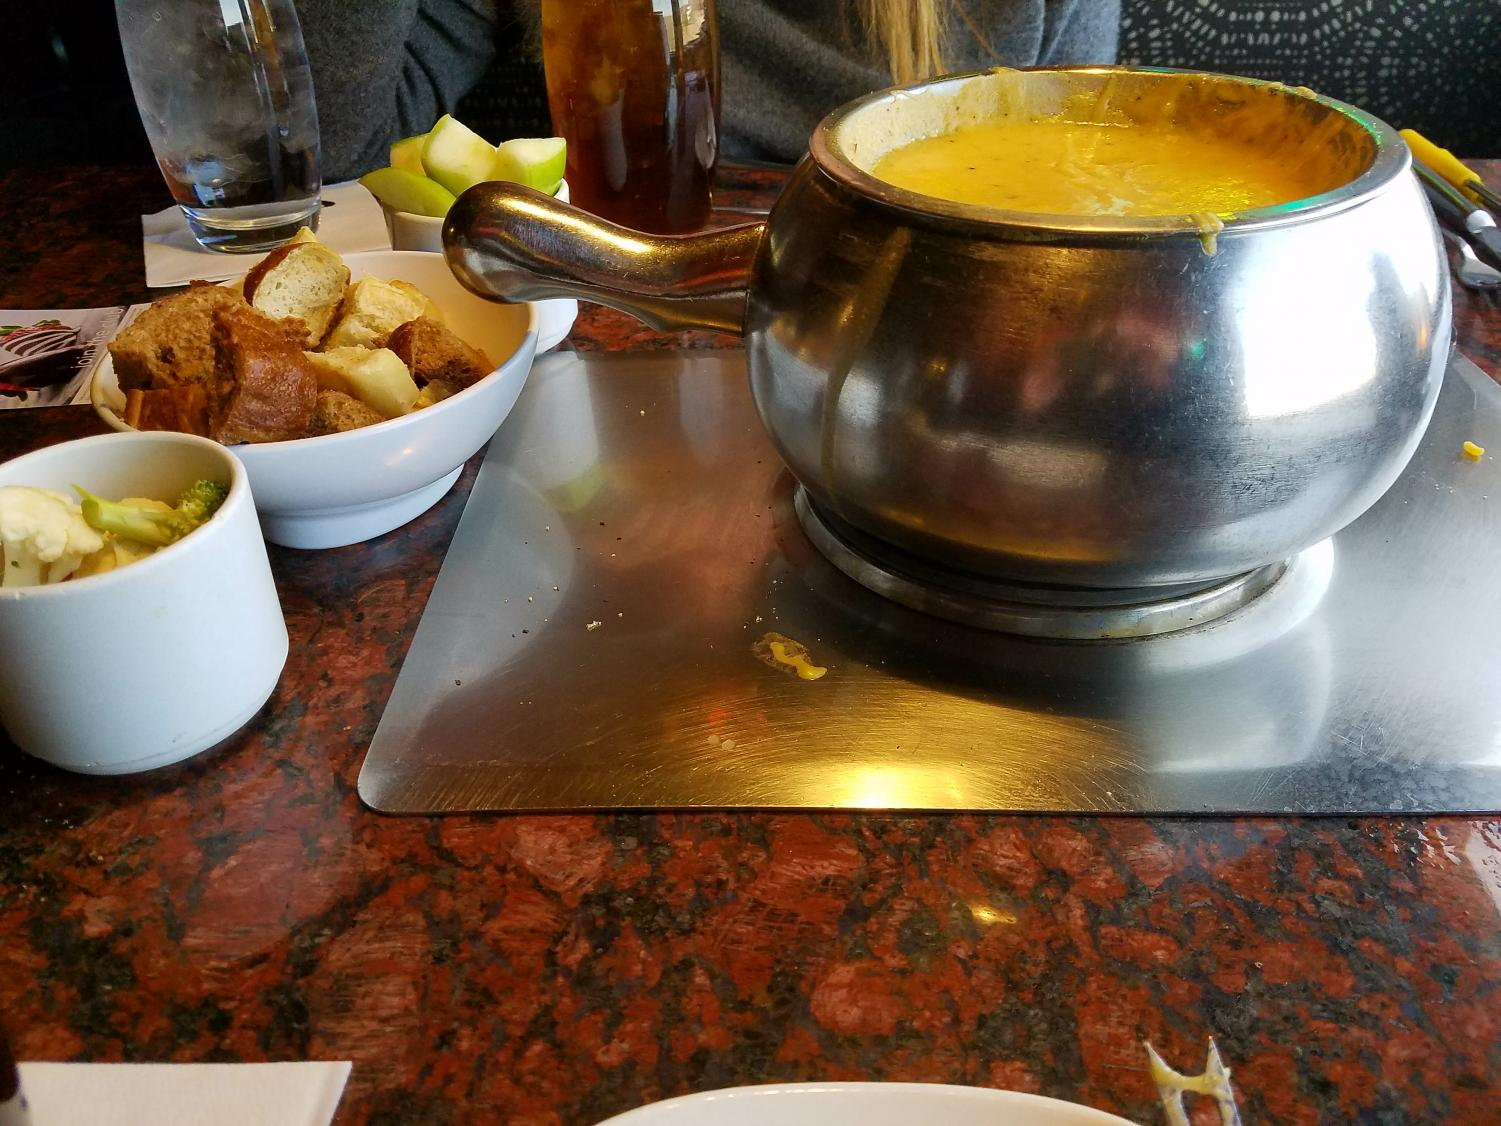 The Wisconsin Cheddar Fondue served with Granny Smith apples, bread and fresh broccoli at The Melting Pot in Littleton, Colo., April 3, 2018.